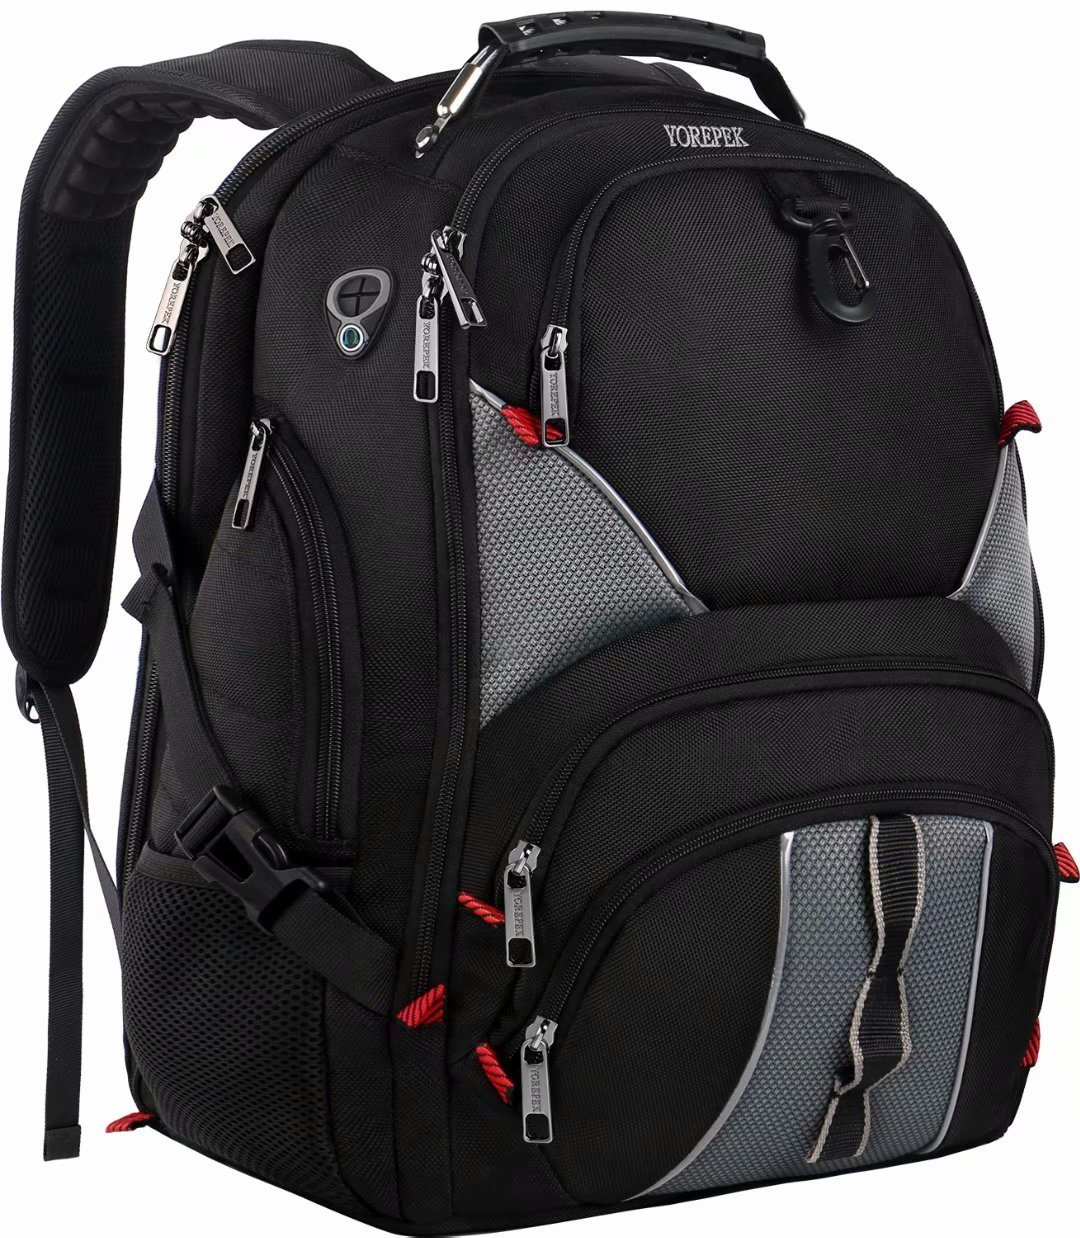 17 inch Laptop Backpack,Large Travel Backpack,TSA Friendly Durable Computer Bagpack with Luggage Sleeve for Men Women, Water Resistant Business College School Bag with USB Charger Port, Black by YOREPEK (Image #1)